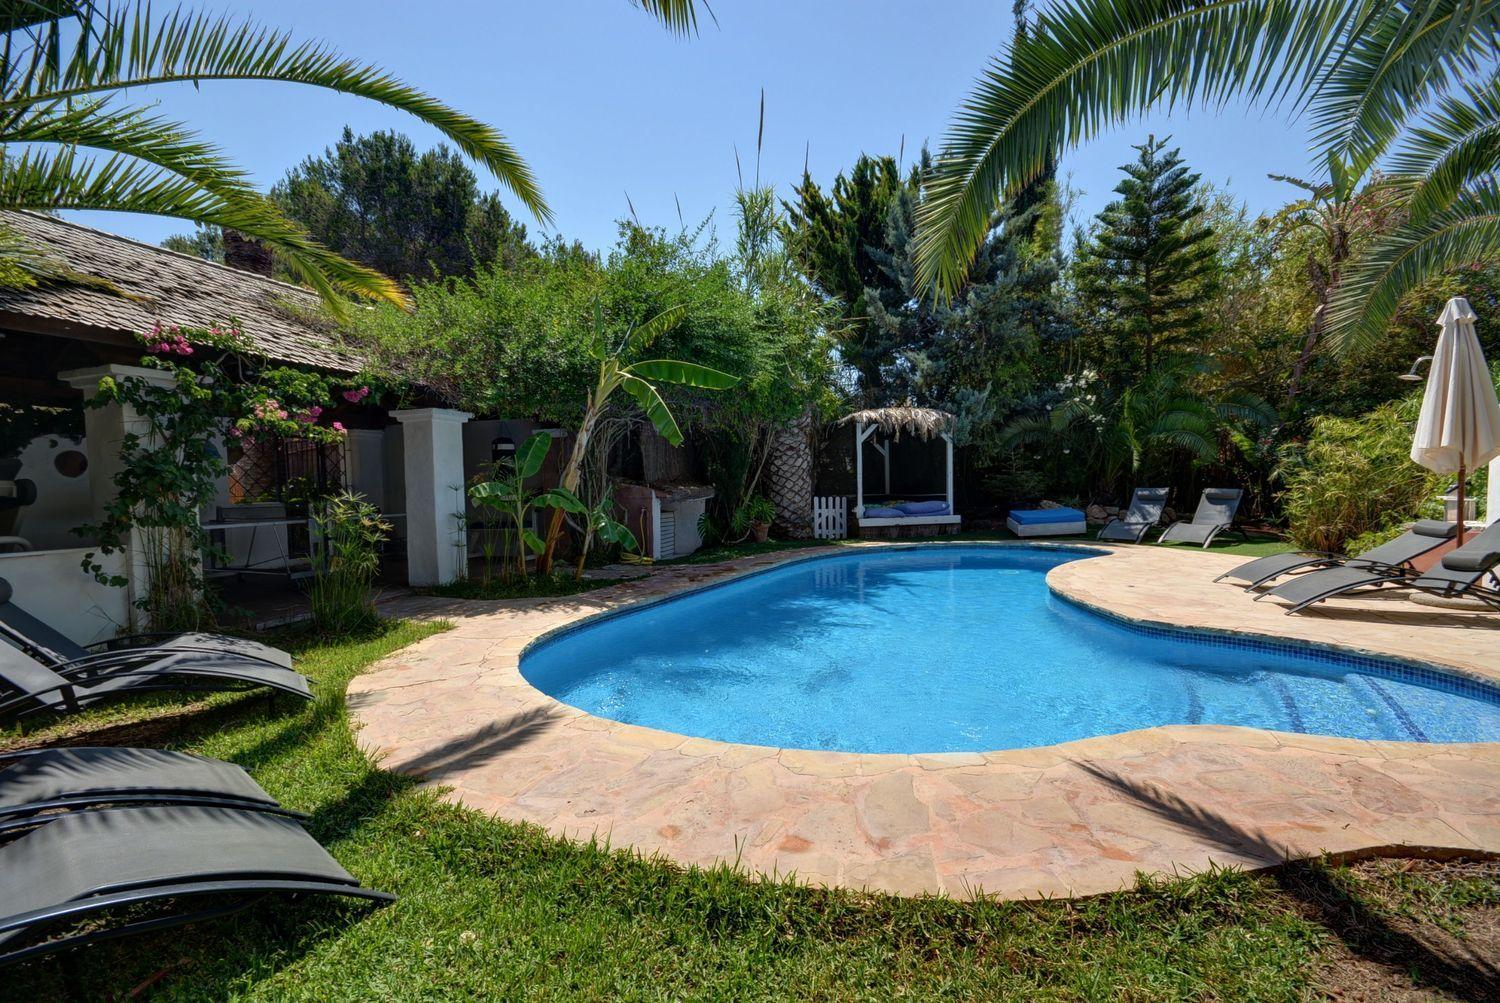 Fantastic house located in the charming town of Santa Eulalia